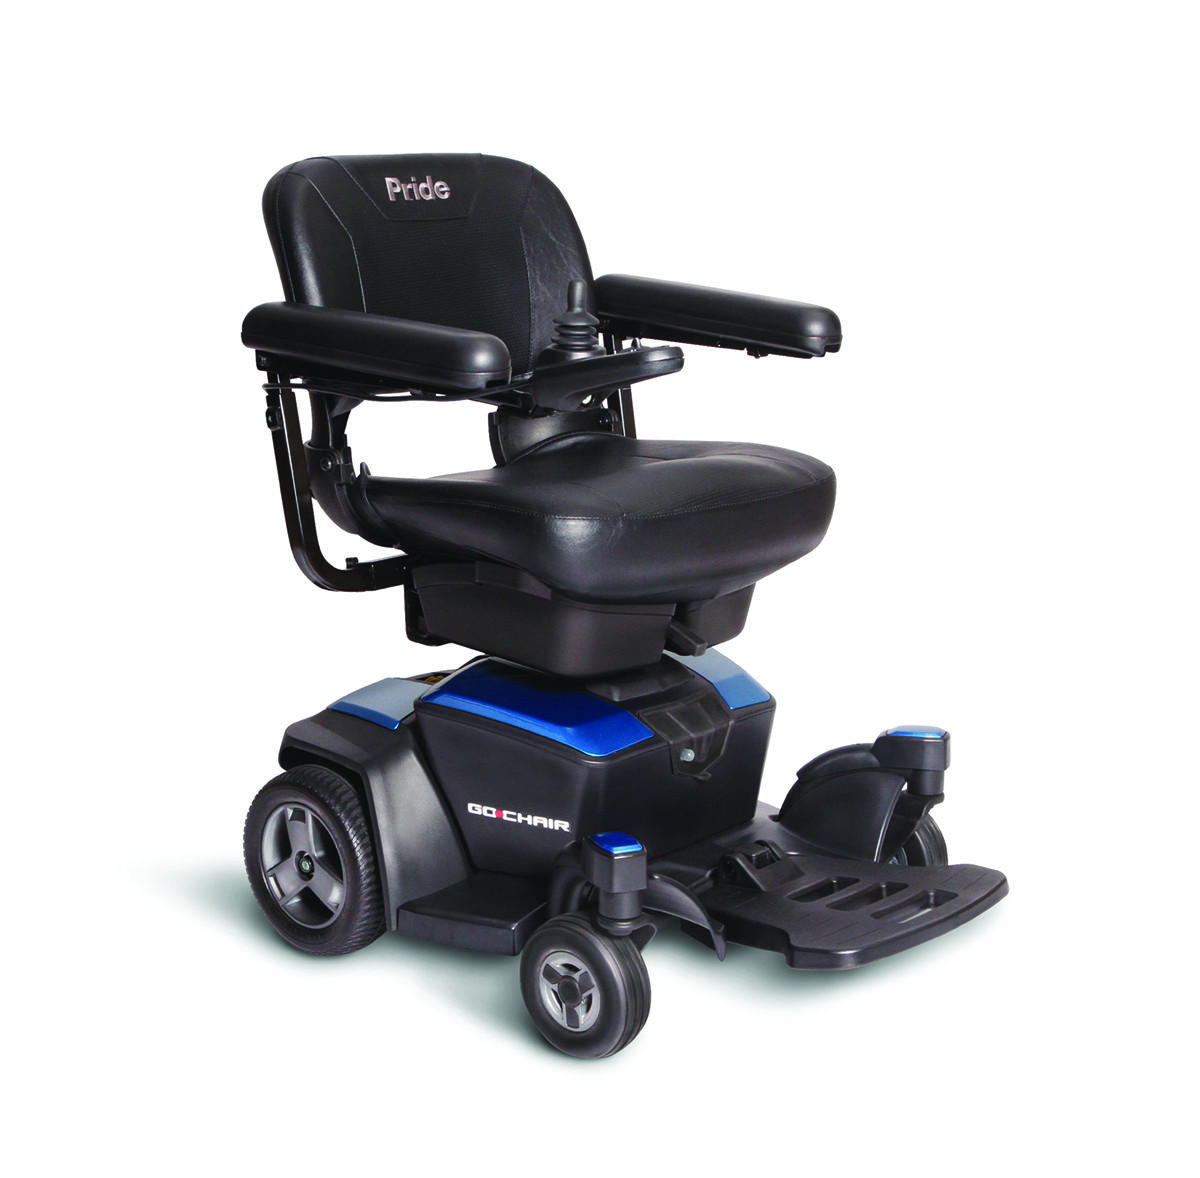 Power Chair Repair Go Chair Power Wheelchair For Sale Lowest Prices Tax